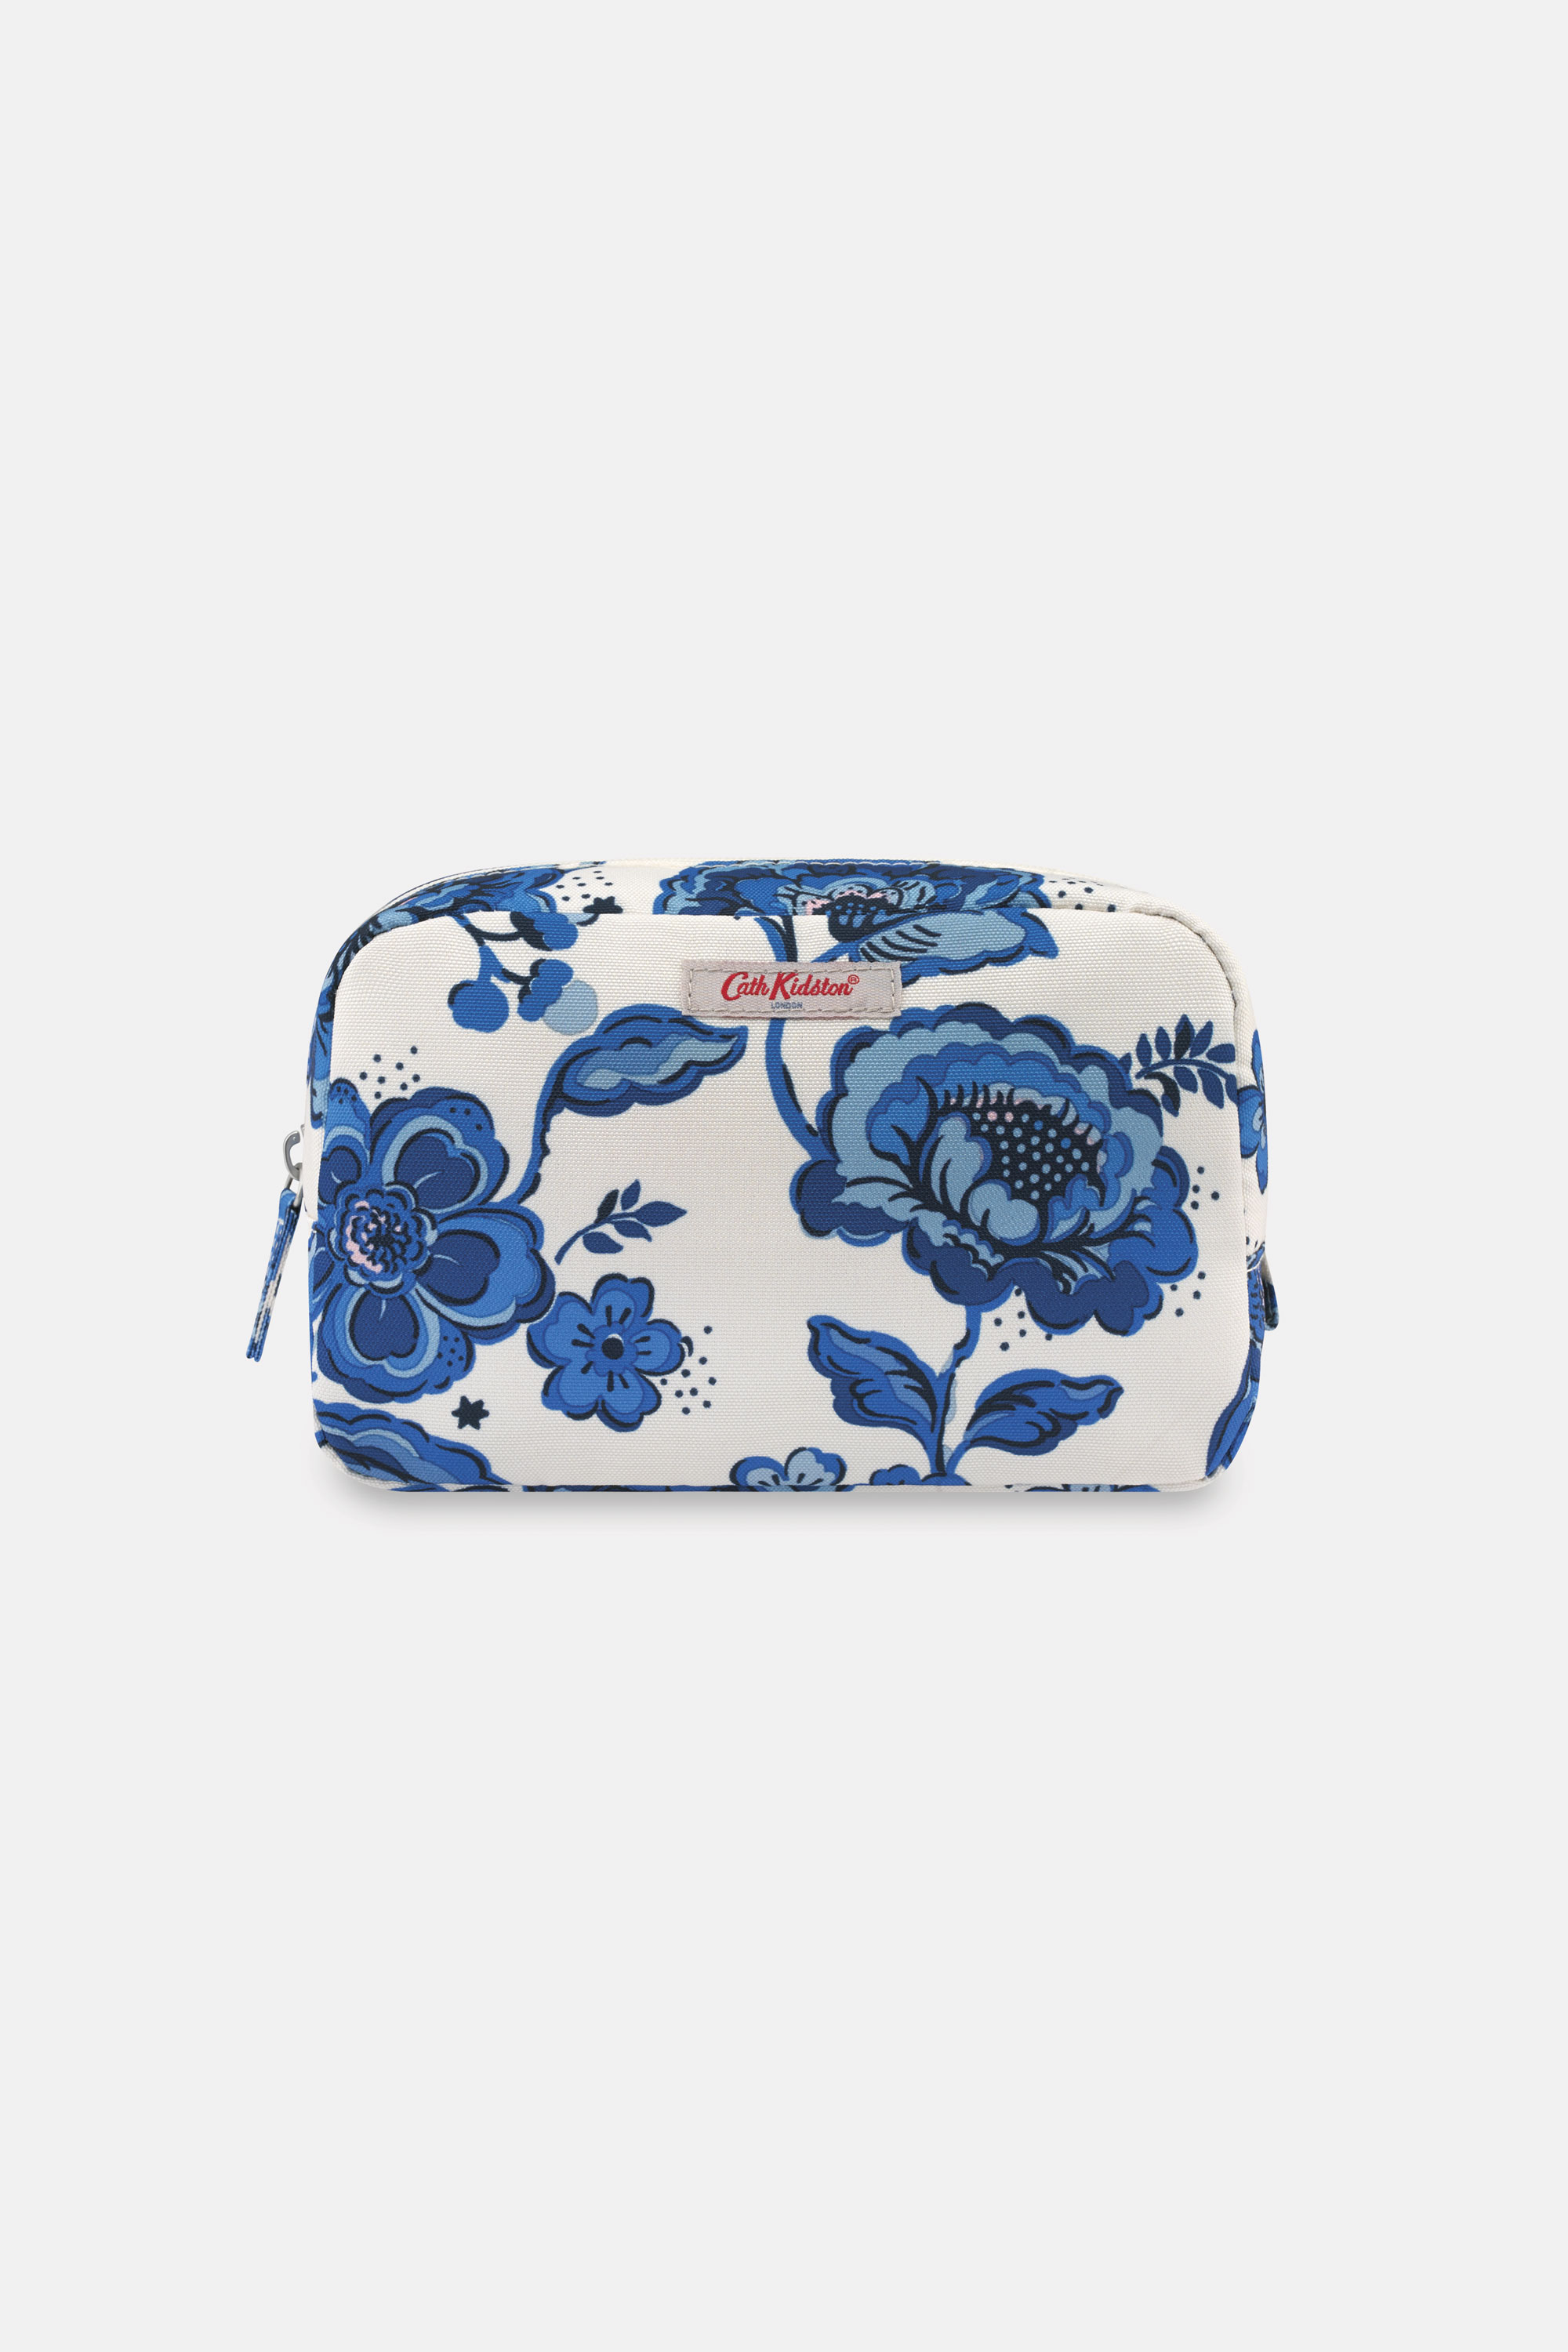 Cath Kidston Chintz Flower Recycled Classic Cosmetic bag in Warm Cream